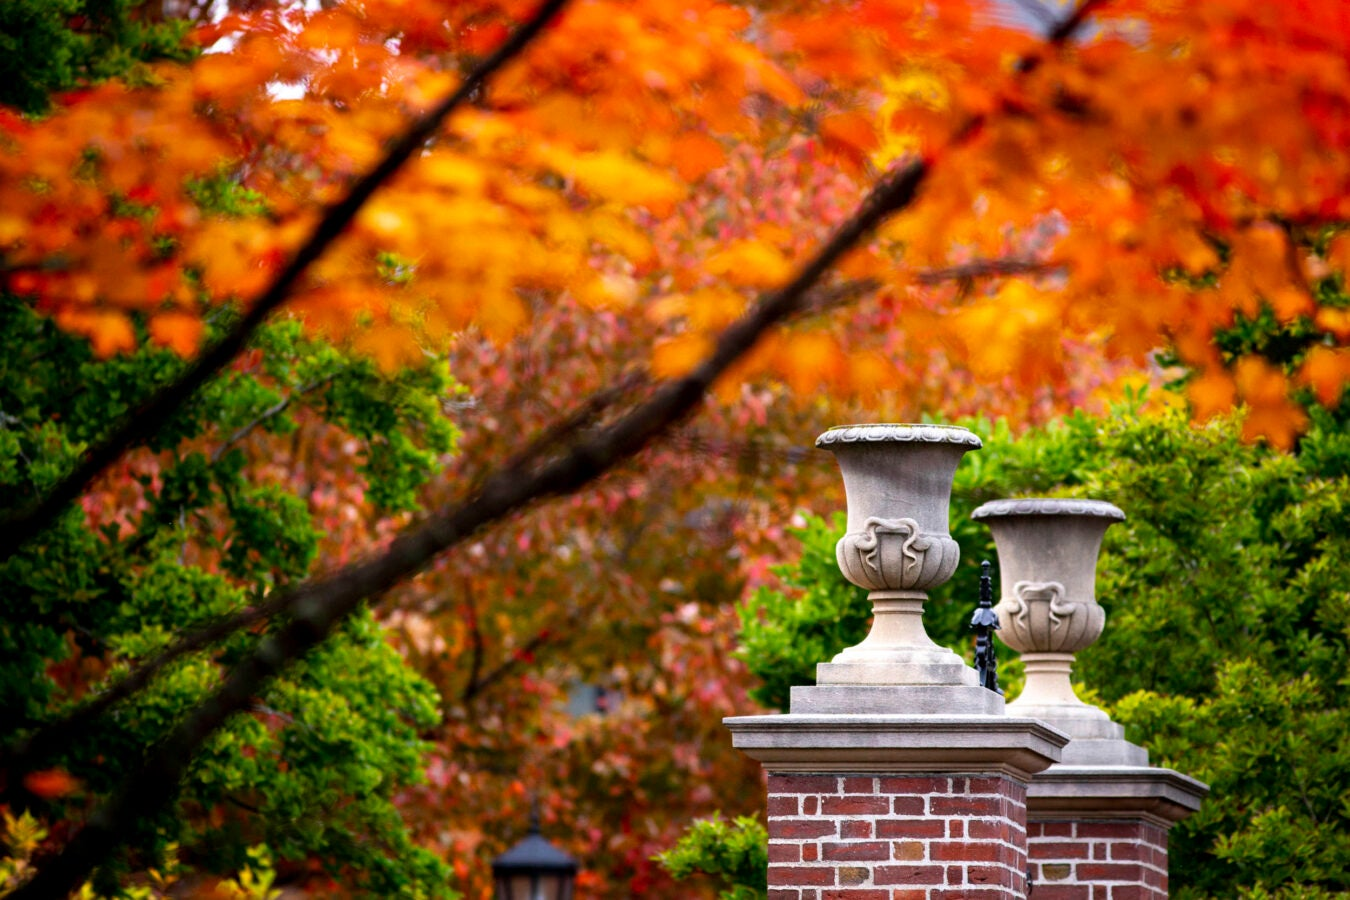 View of fall foliage at Radcliffe Yard.